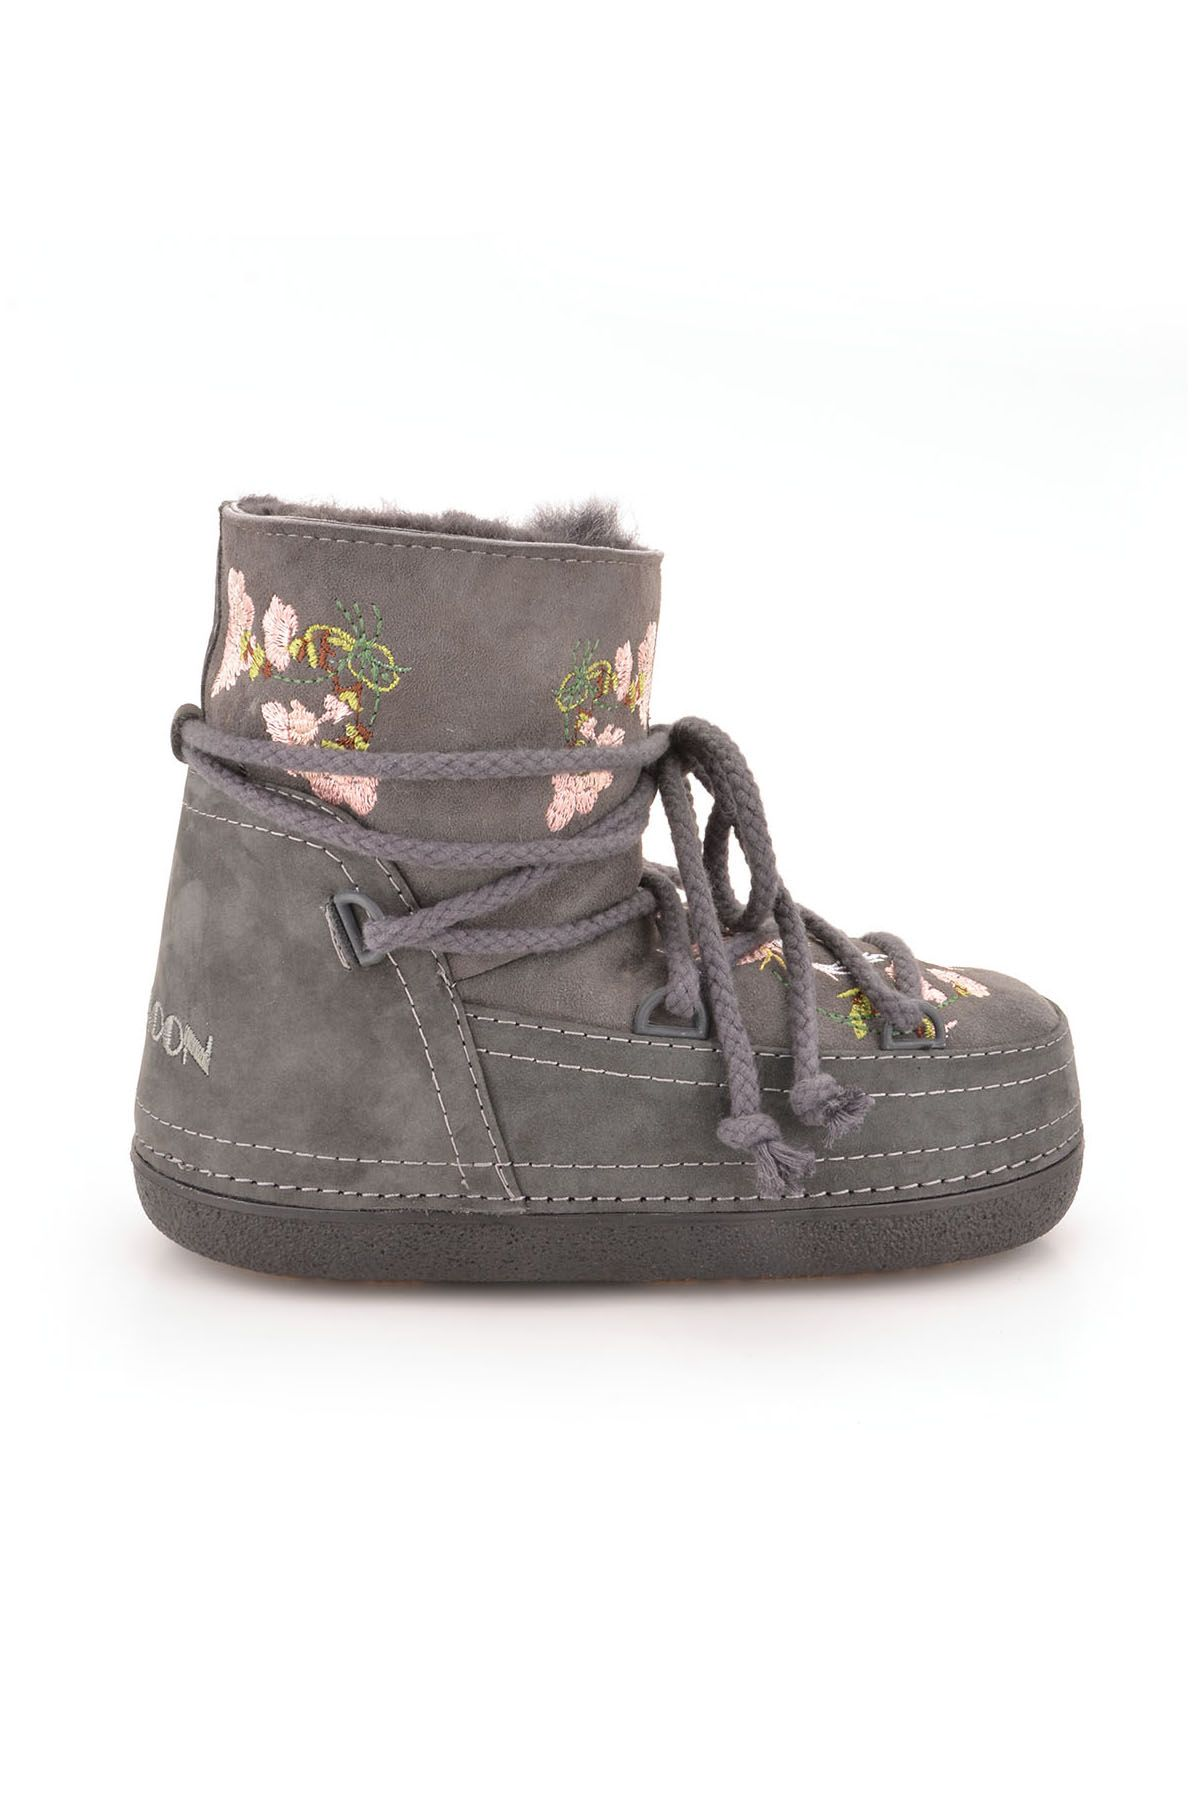 Cool Moon Women Snowboots From Genuine Fur And Suede Decorated With Embroidering Gray